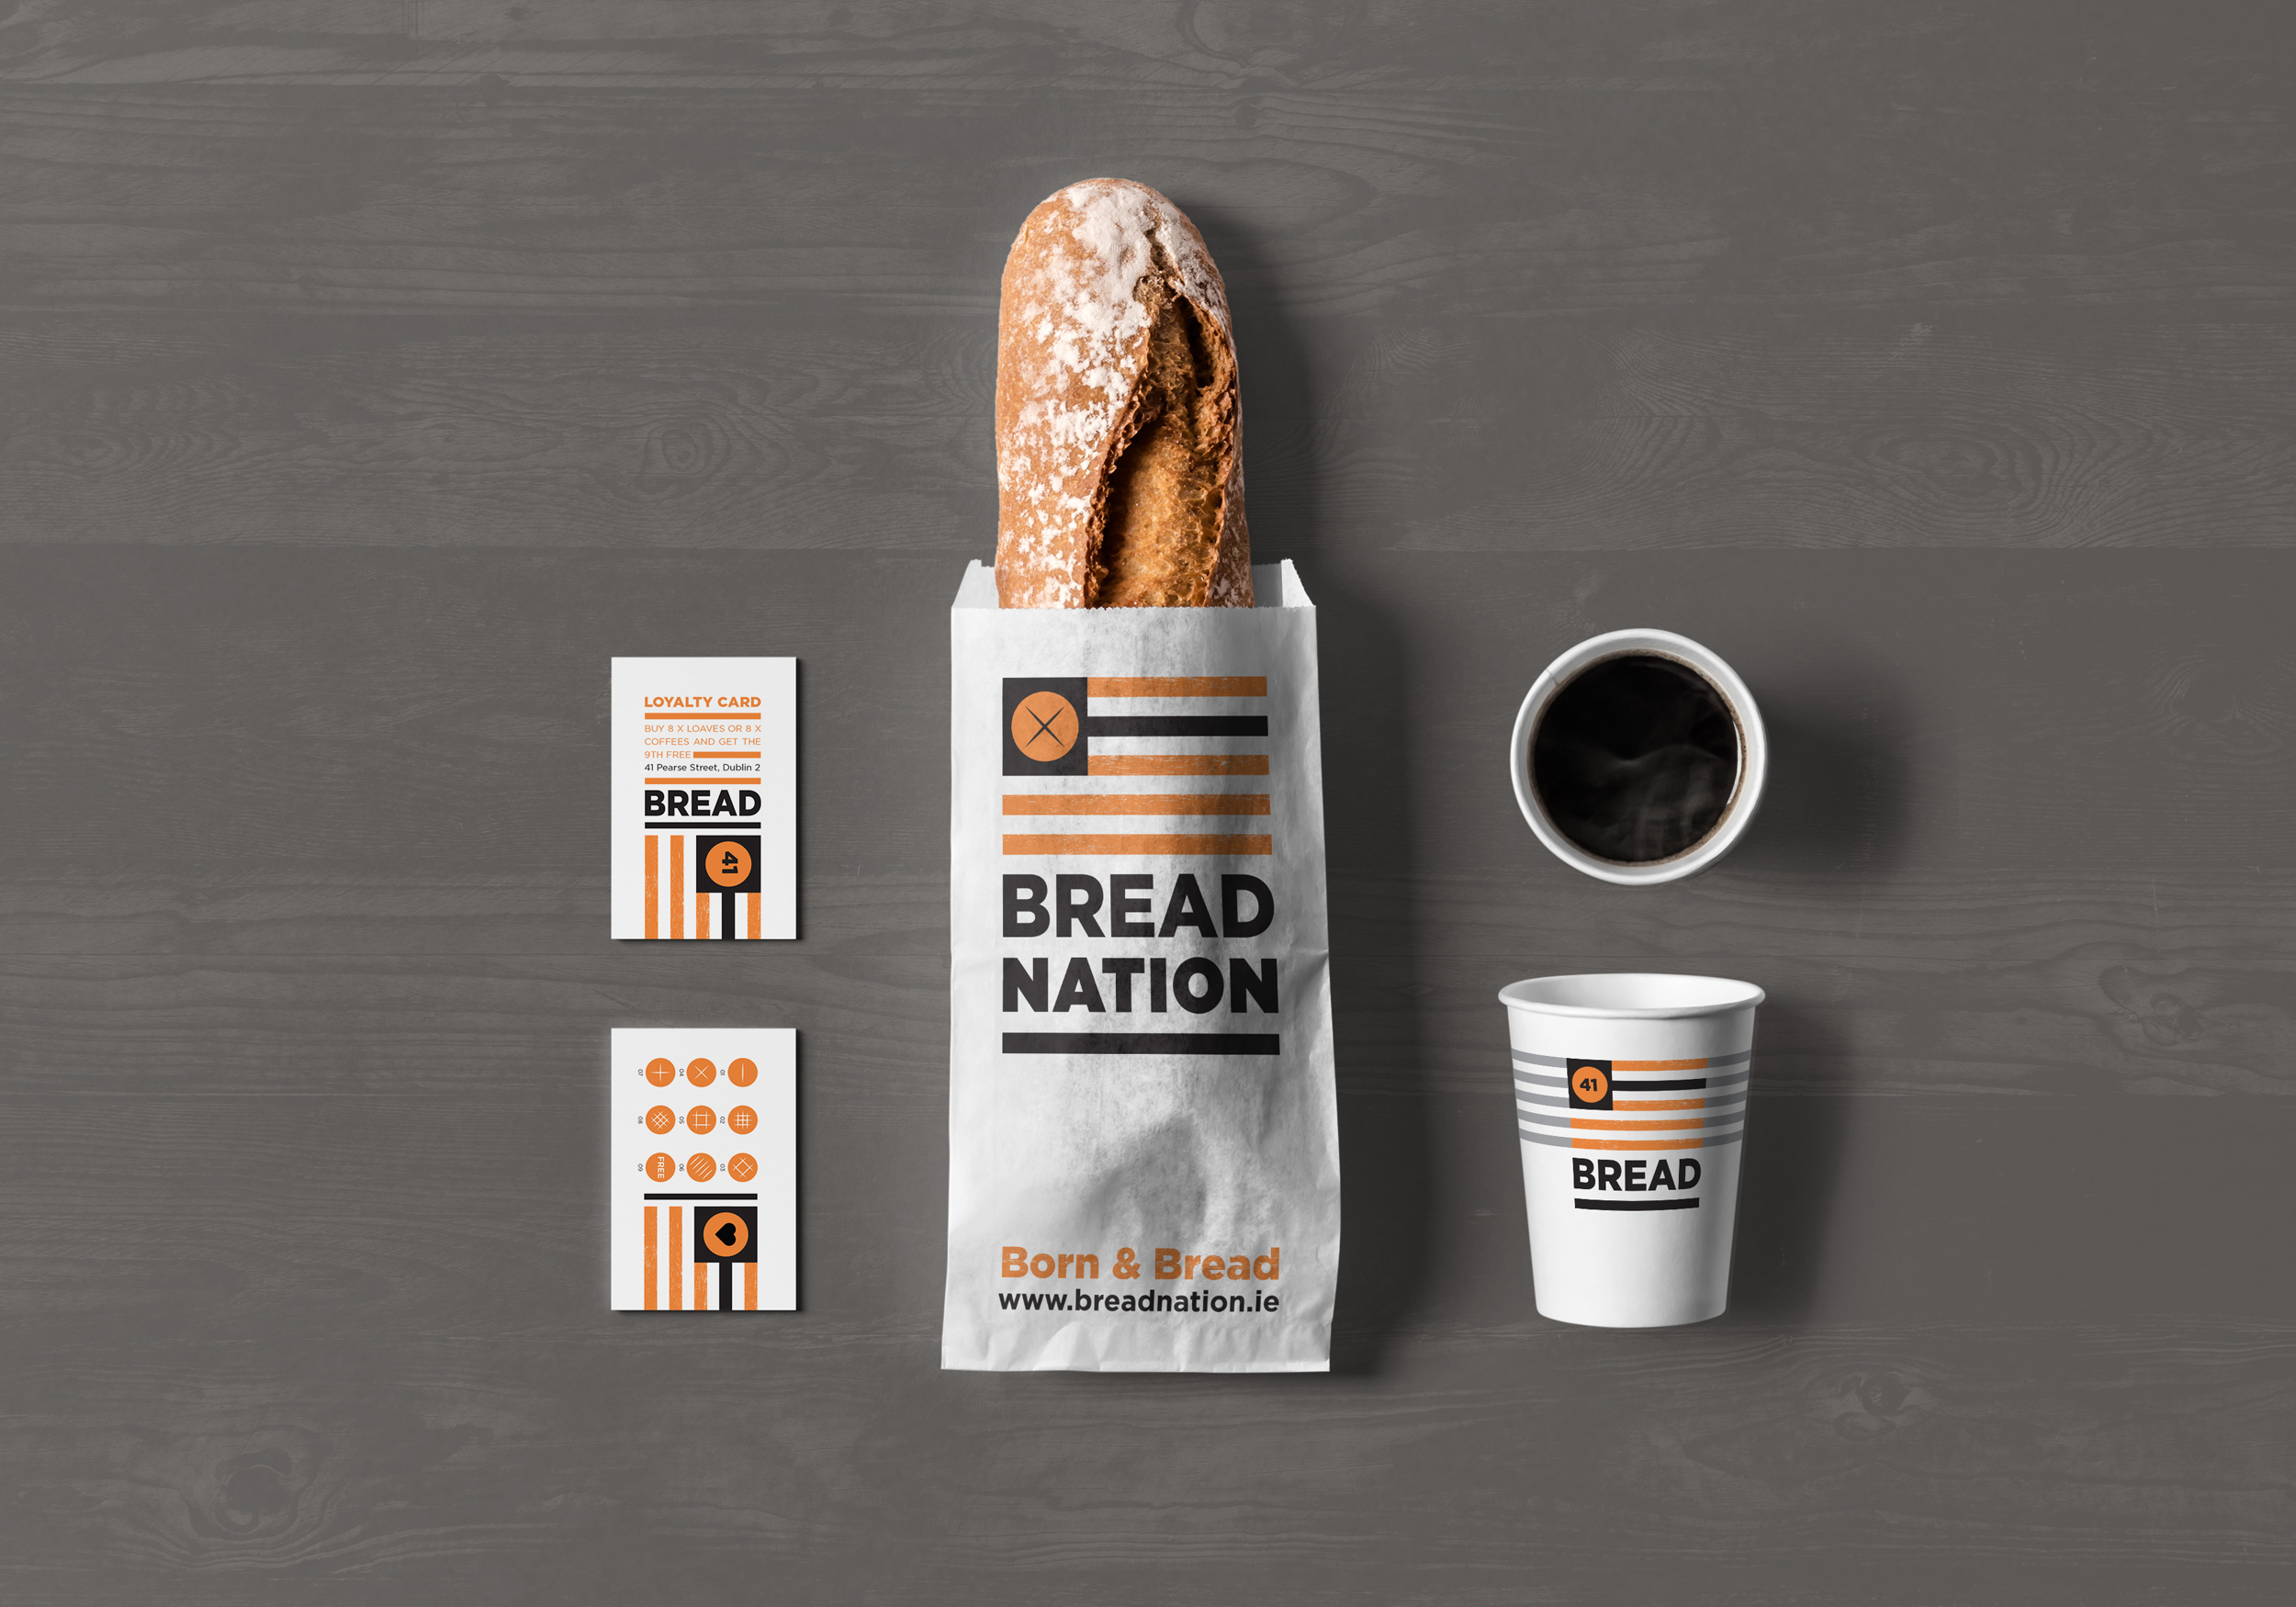 Cover image: Bread Nation / Bread 41